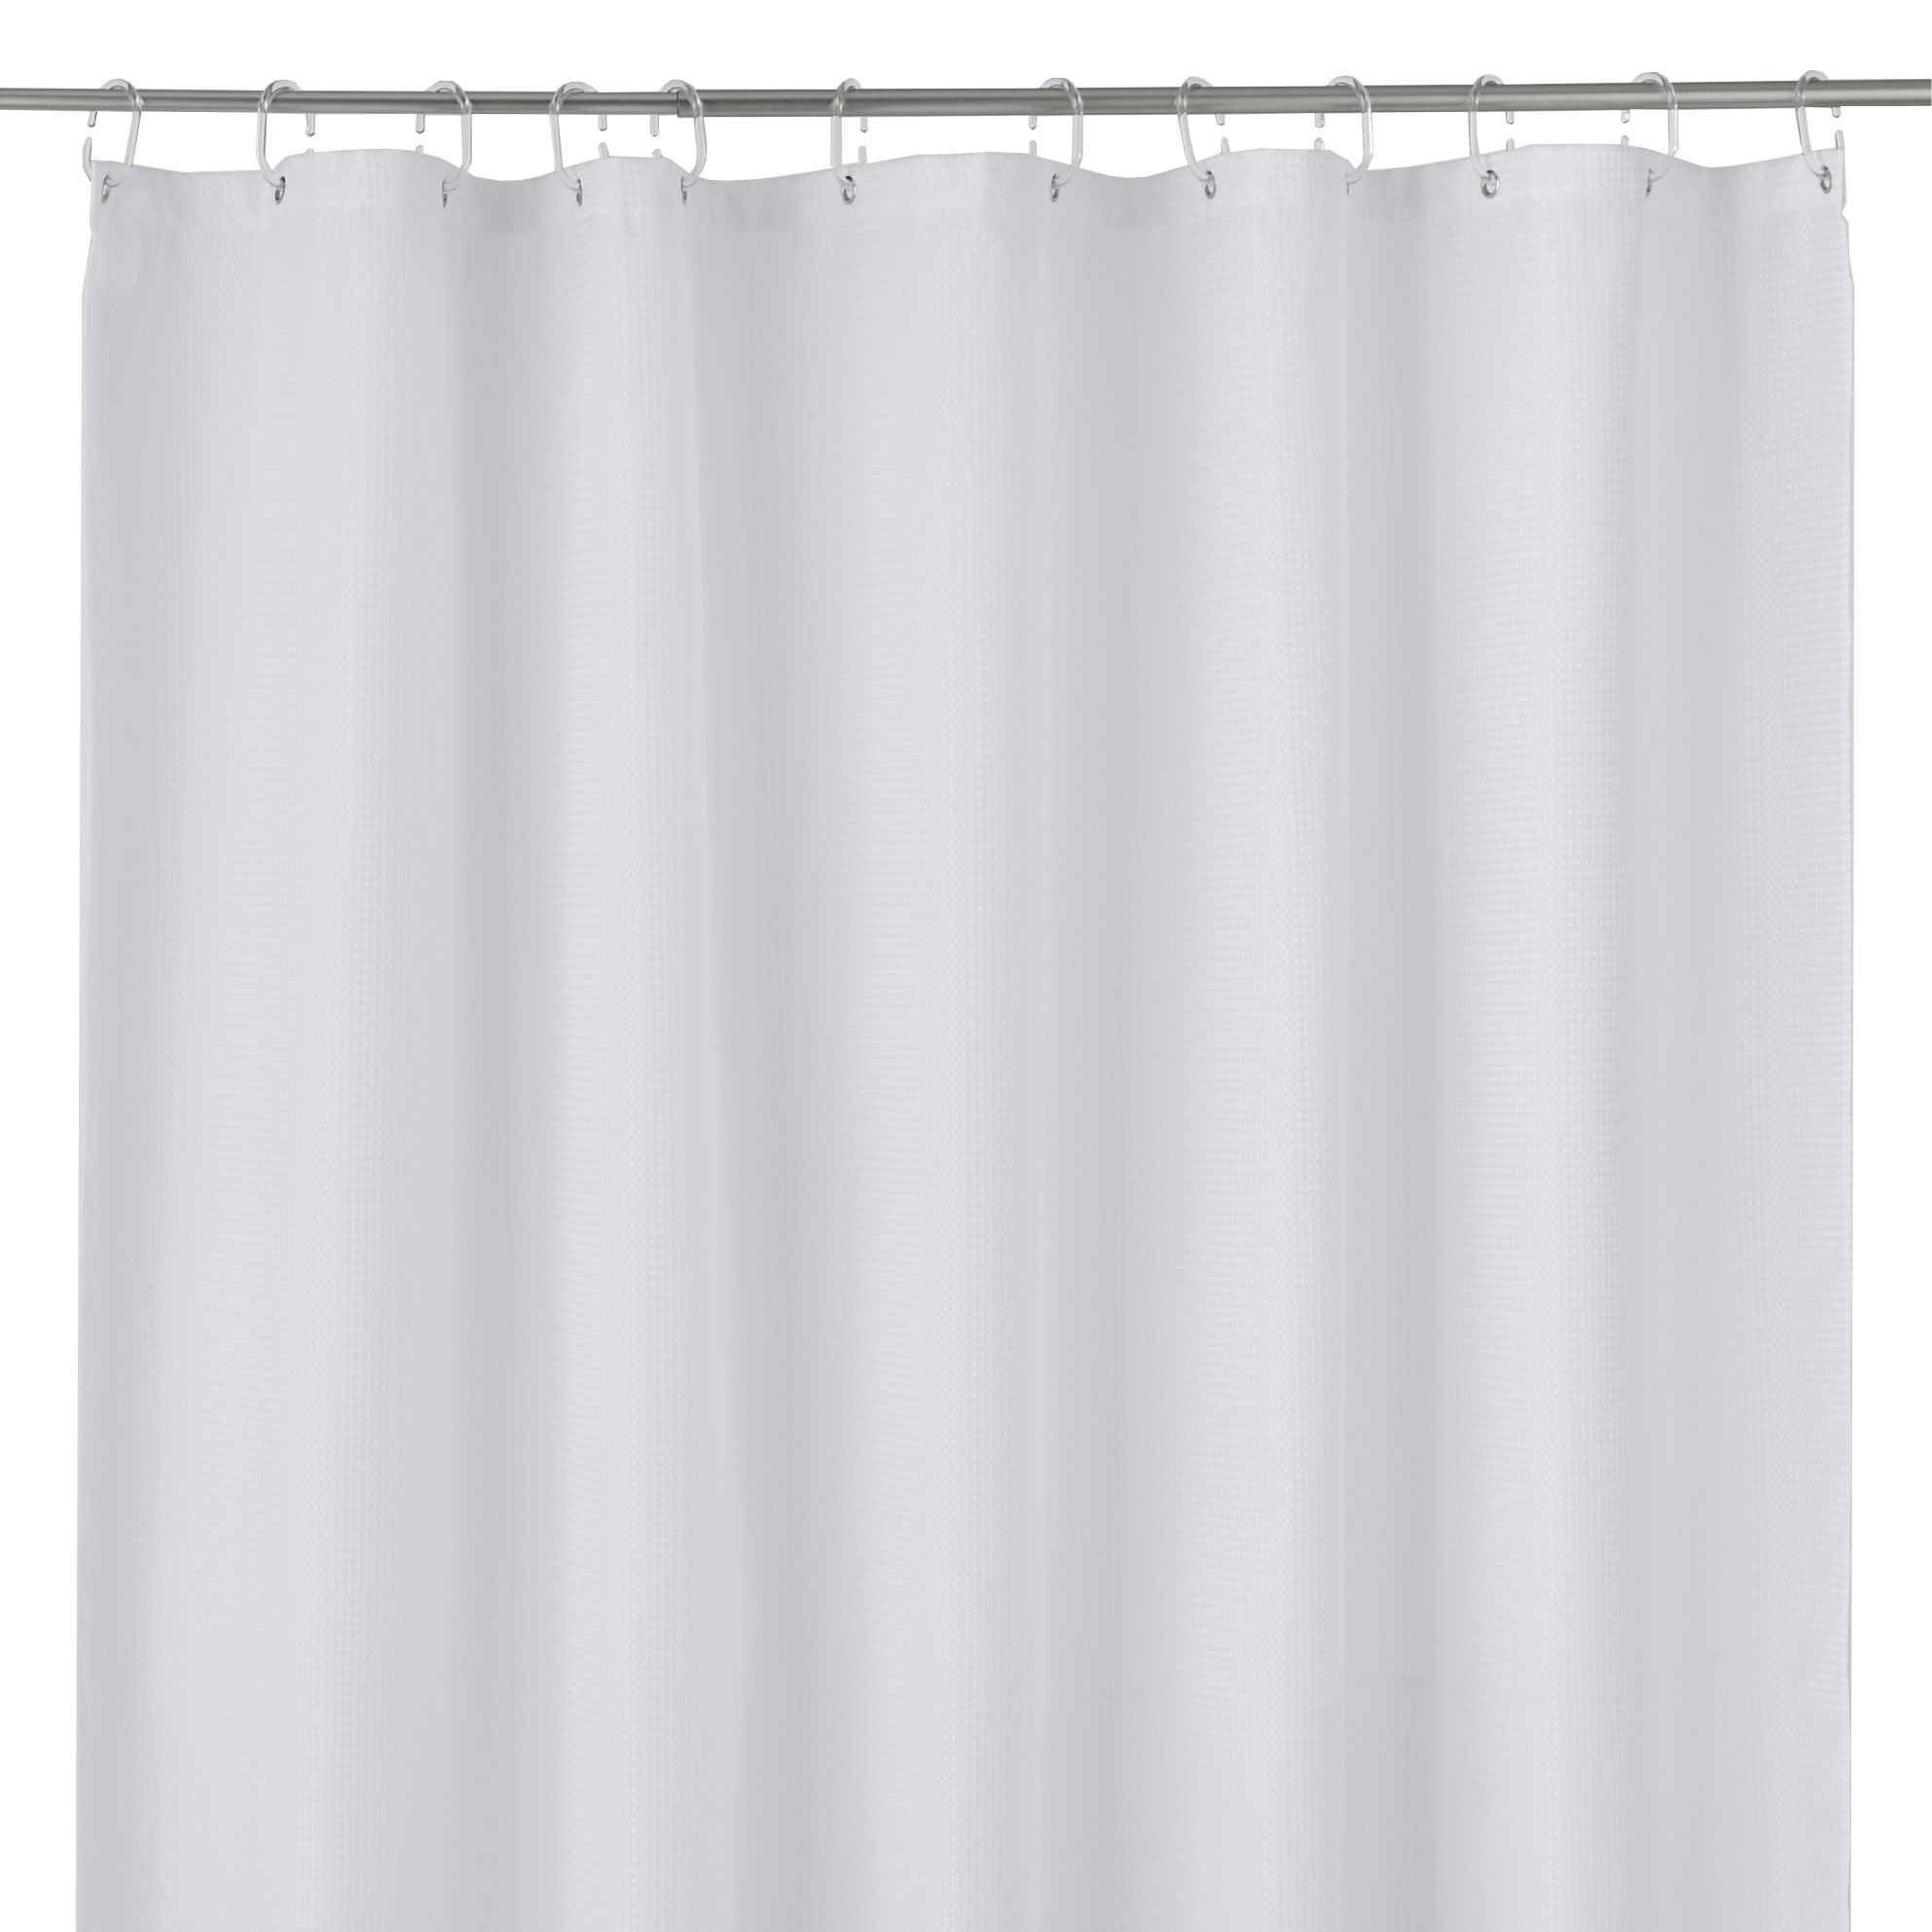 cecina prd mm bq white shower diy at departments l cooke waffle b lewis q curtain curtains